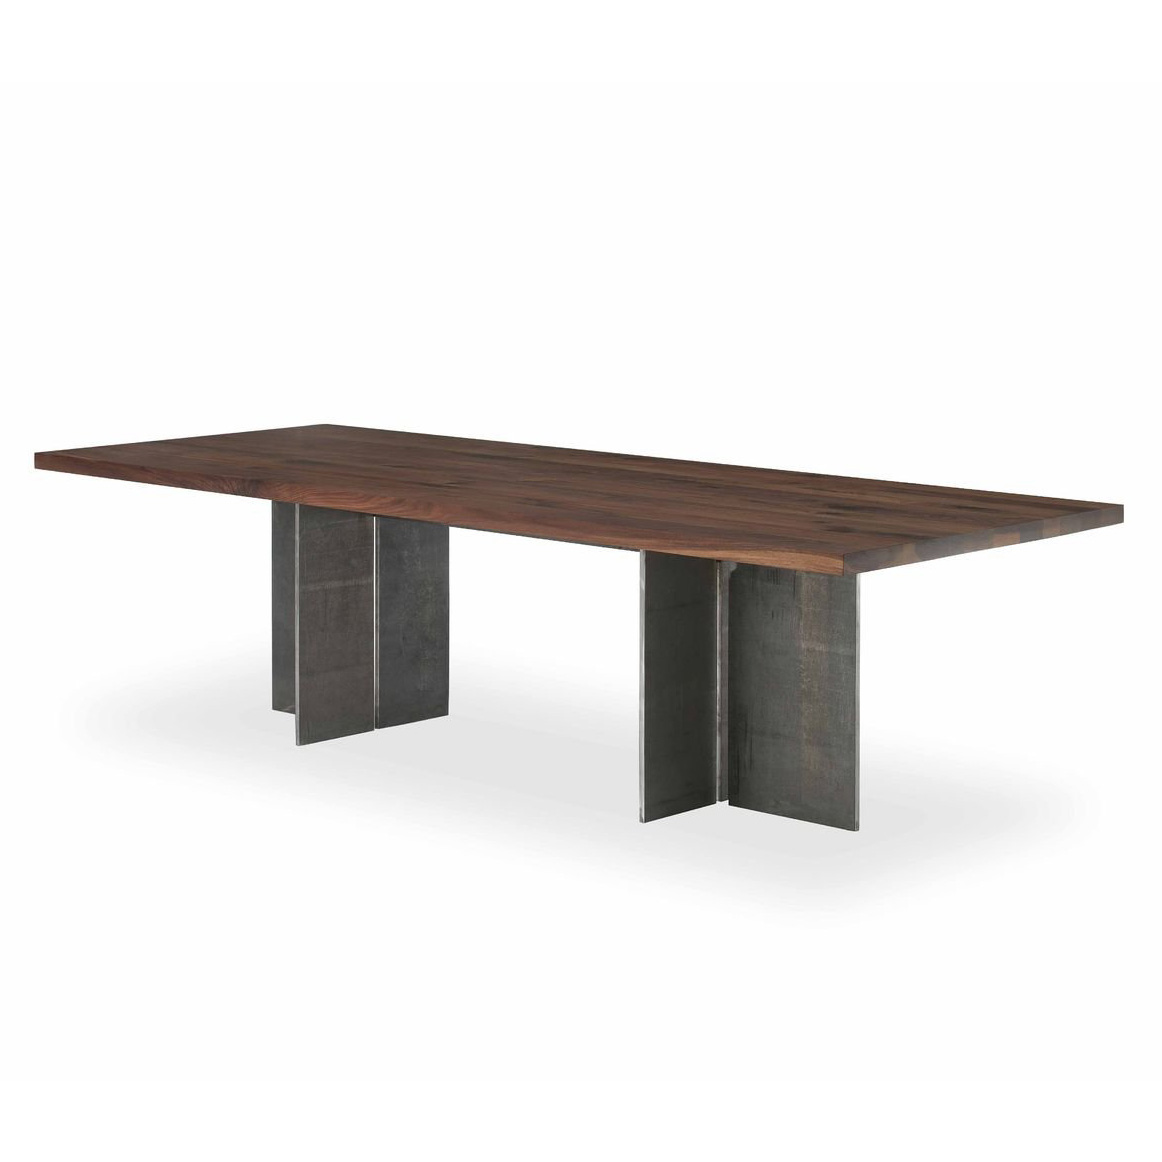 Gualtiero dining table from Riva 1920